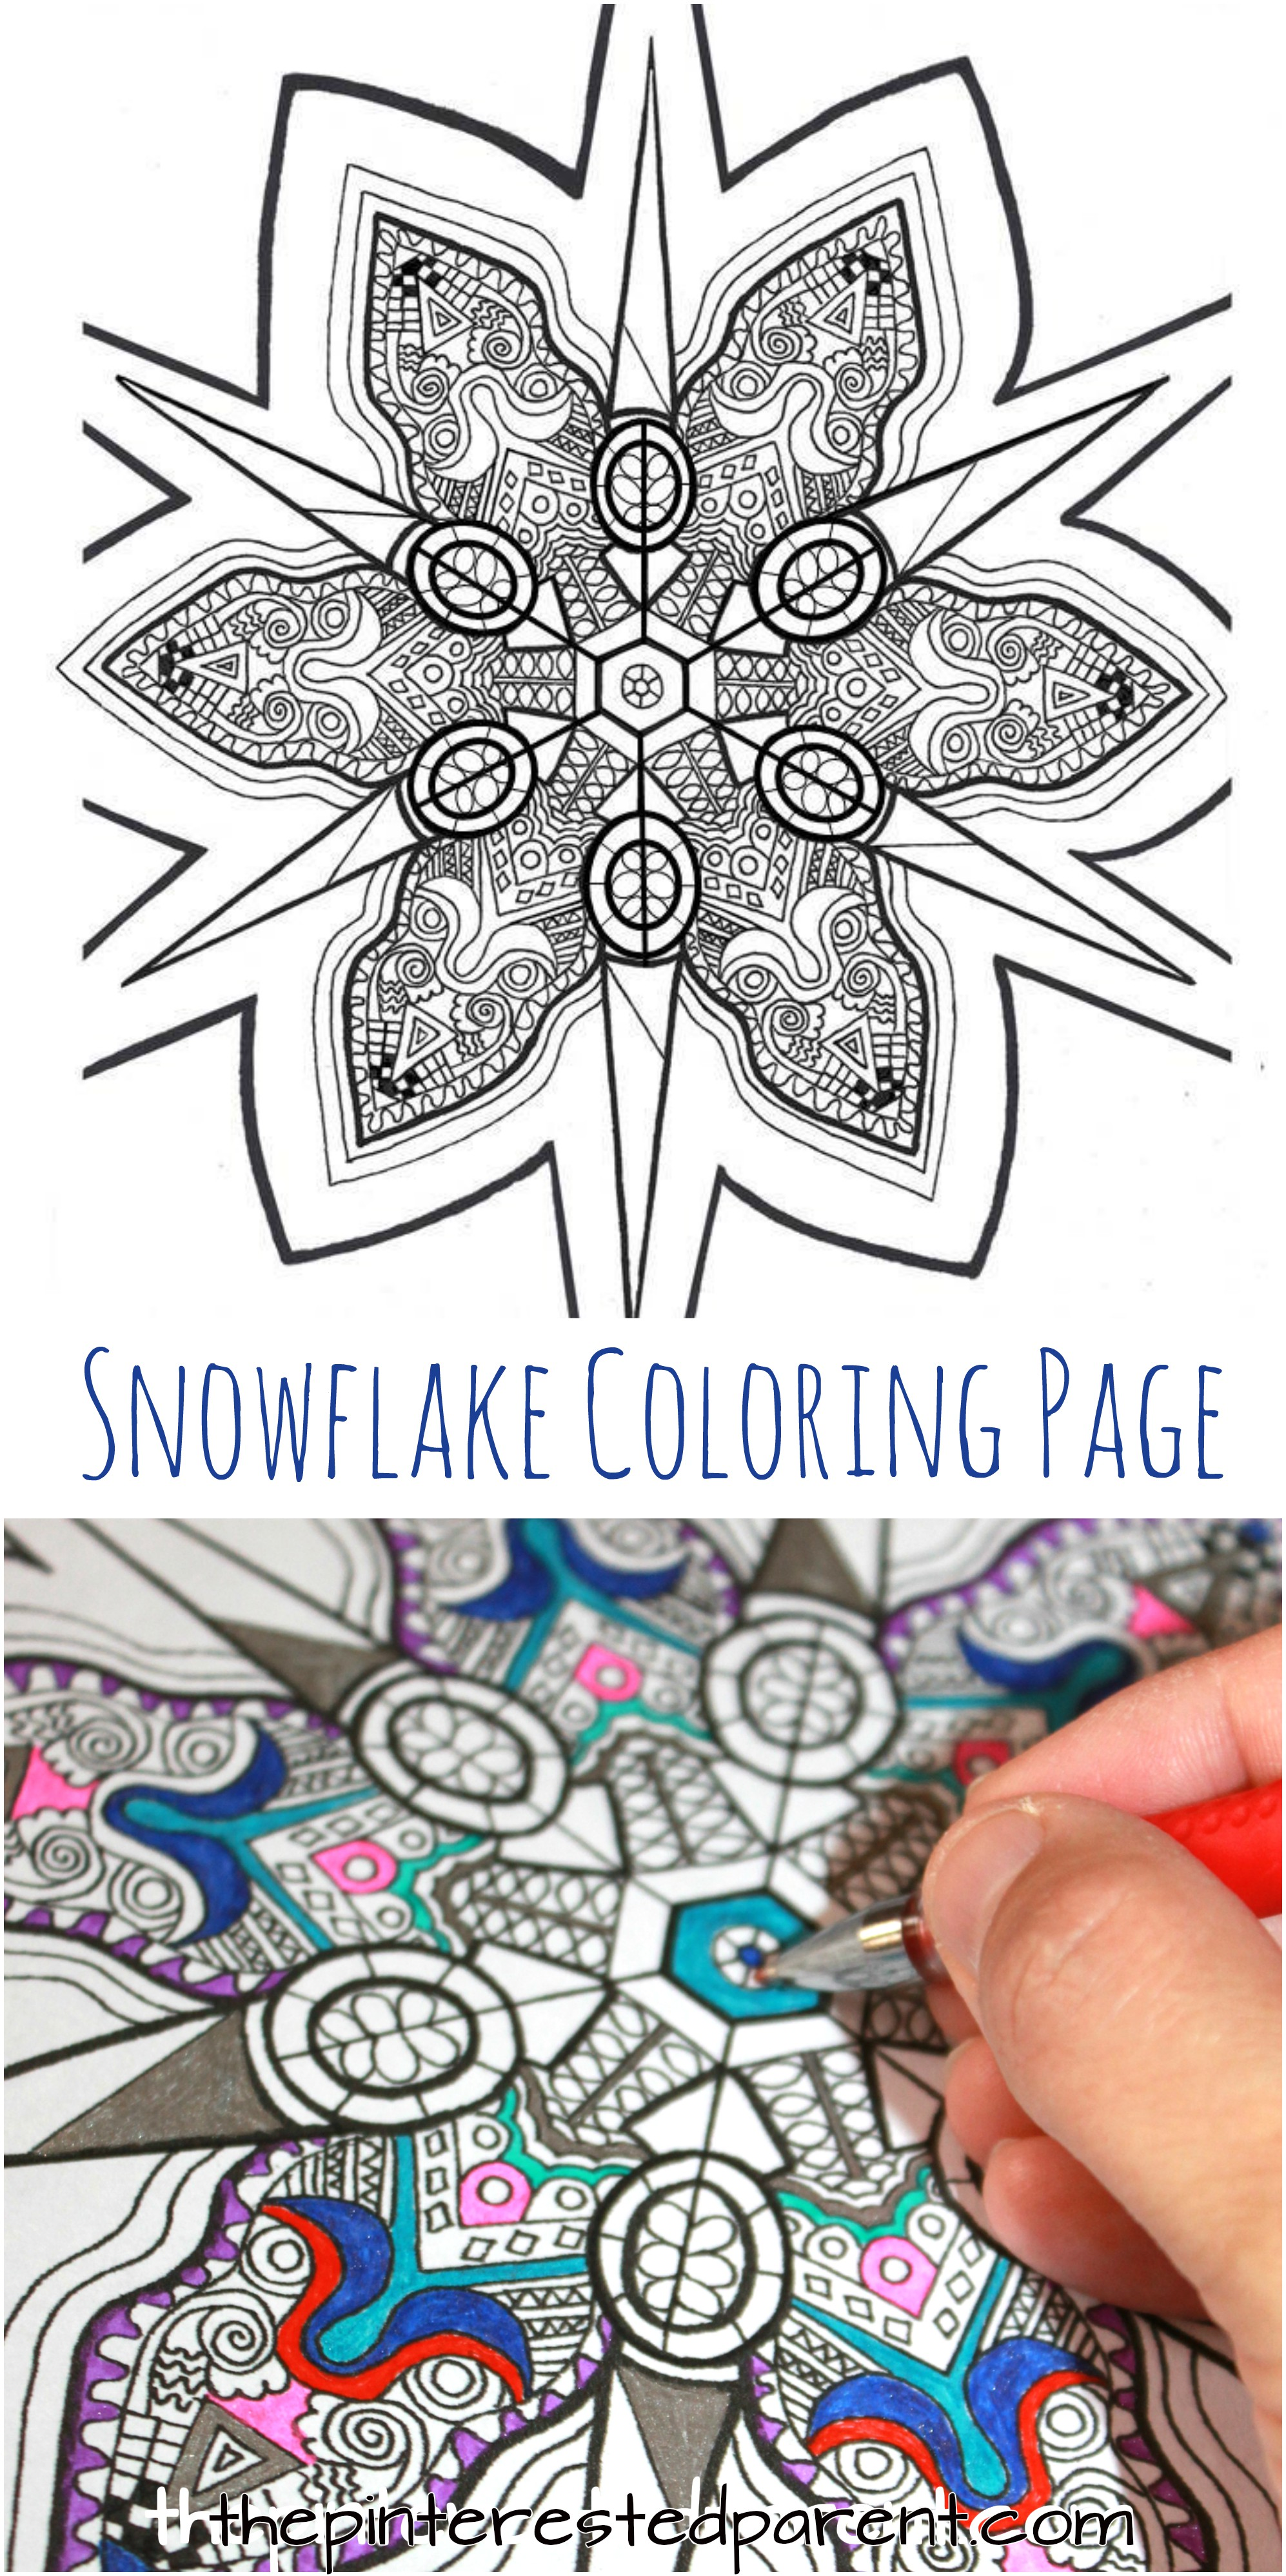 Printable Snowflake Coloring Page – The Pinterested Parent